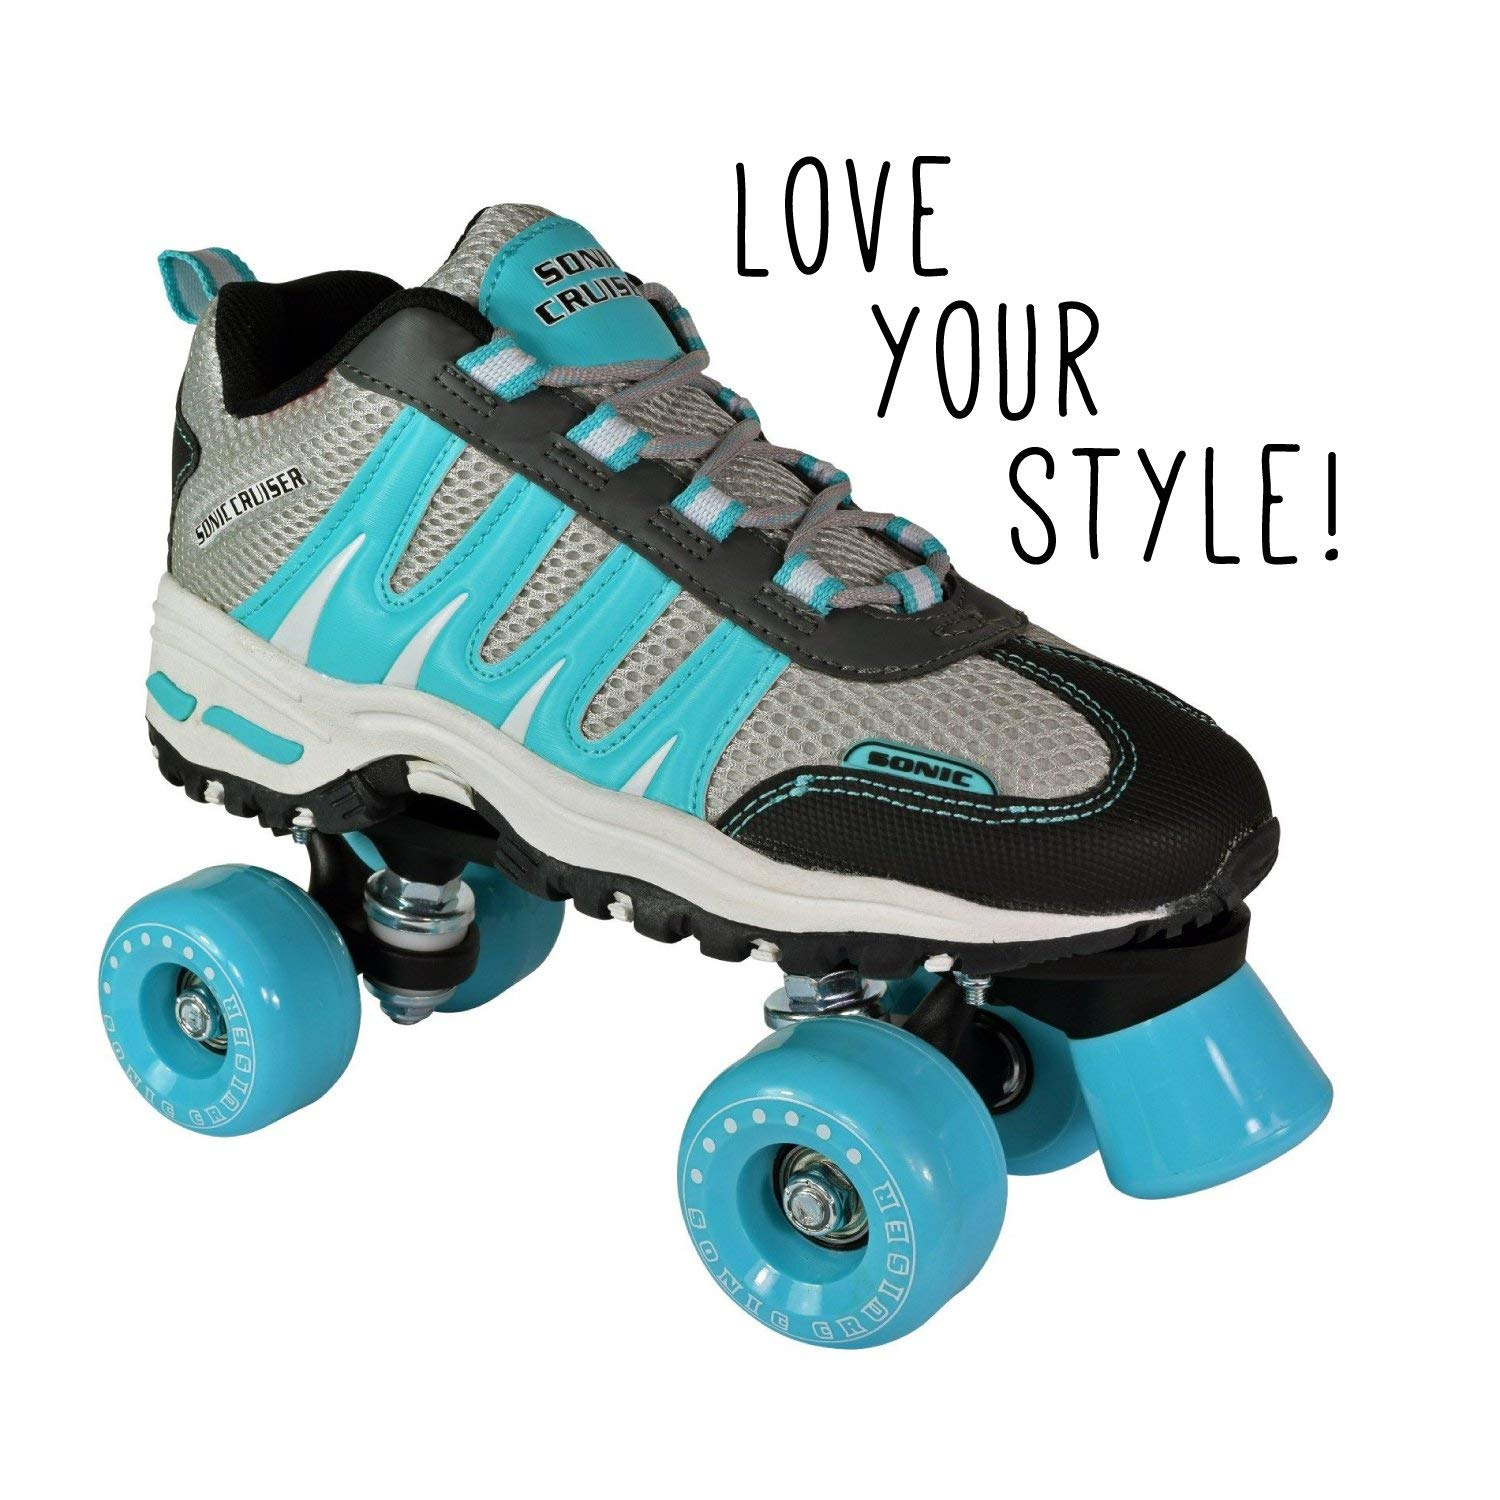 Pacer Roller Skates for Adults | Sonic Cruiser Unisex Mens and Womens Rollerskates for Girls and Ladies - Quad Derby Skates for an Adult Man or Woman - Indoor/Outdoor (Teal Men 6/Women 7)